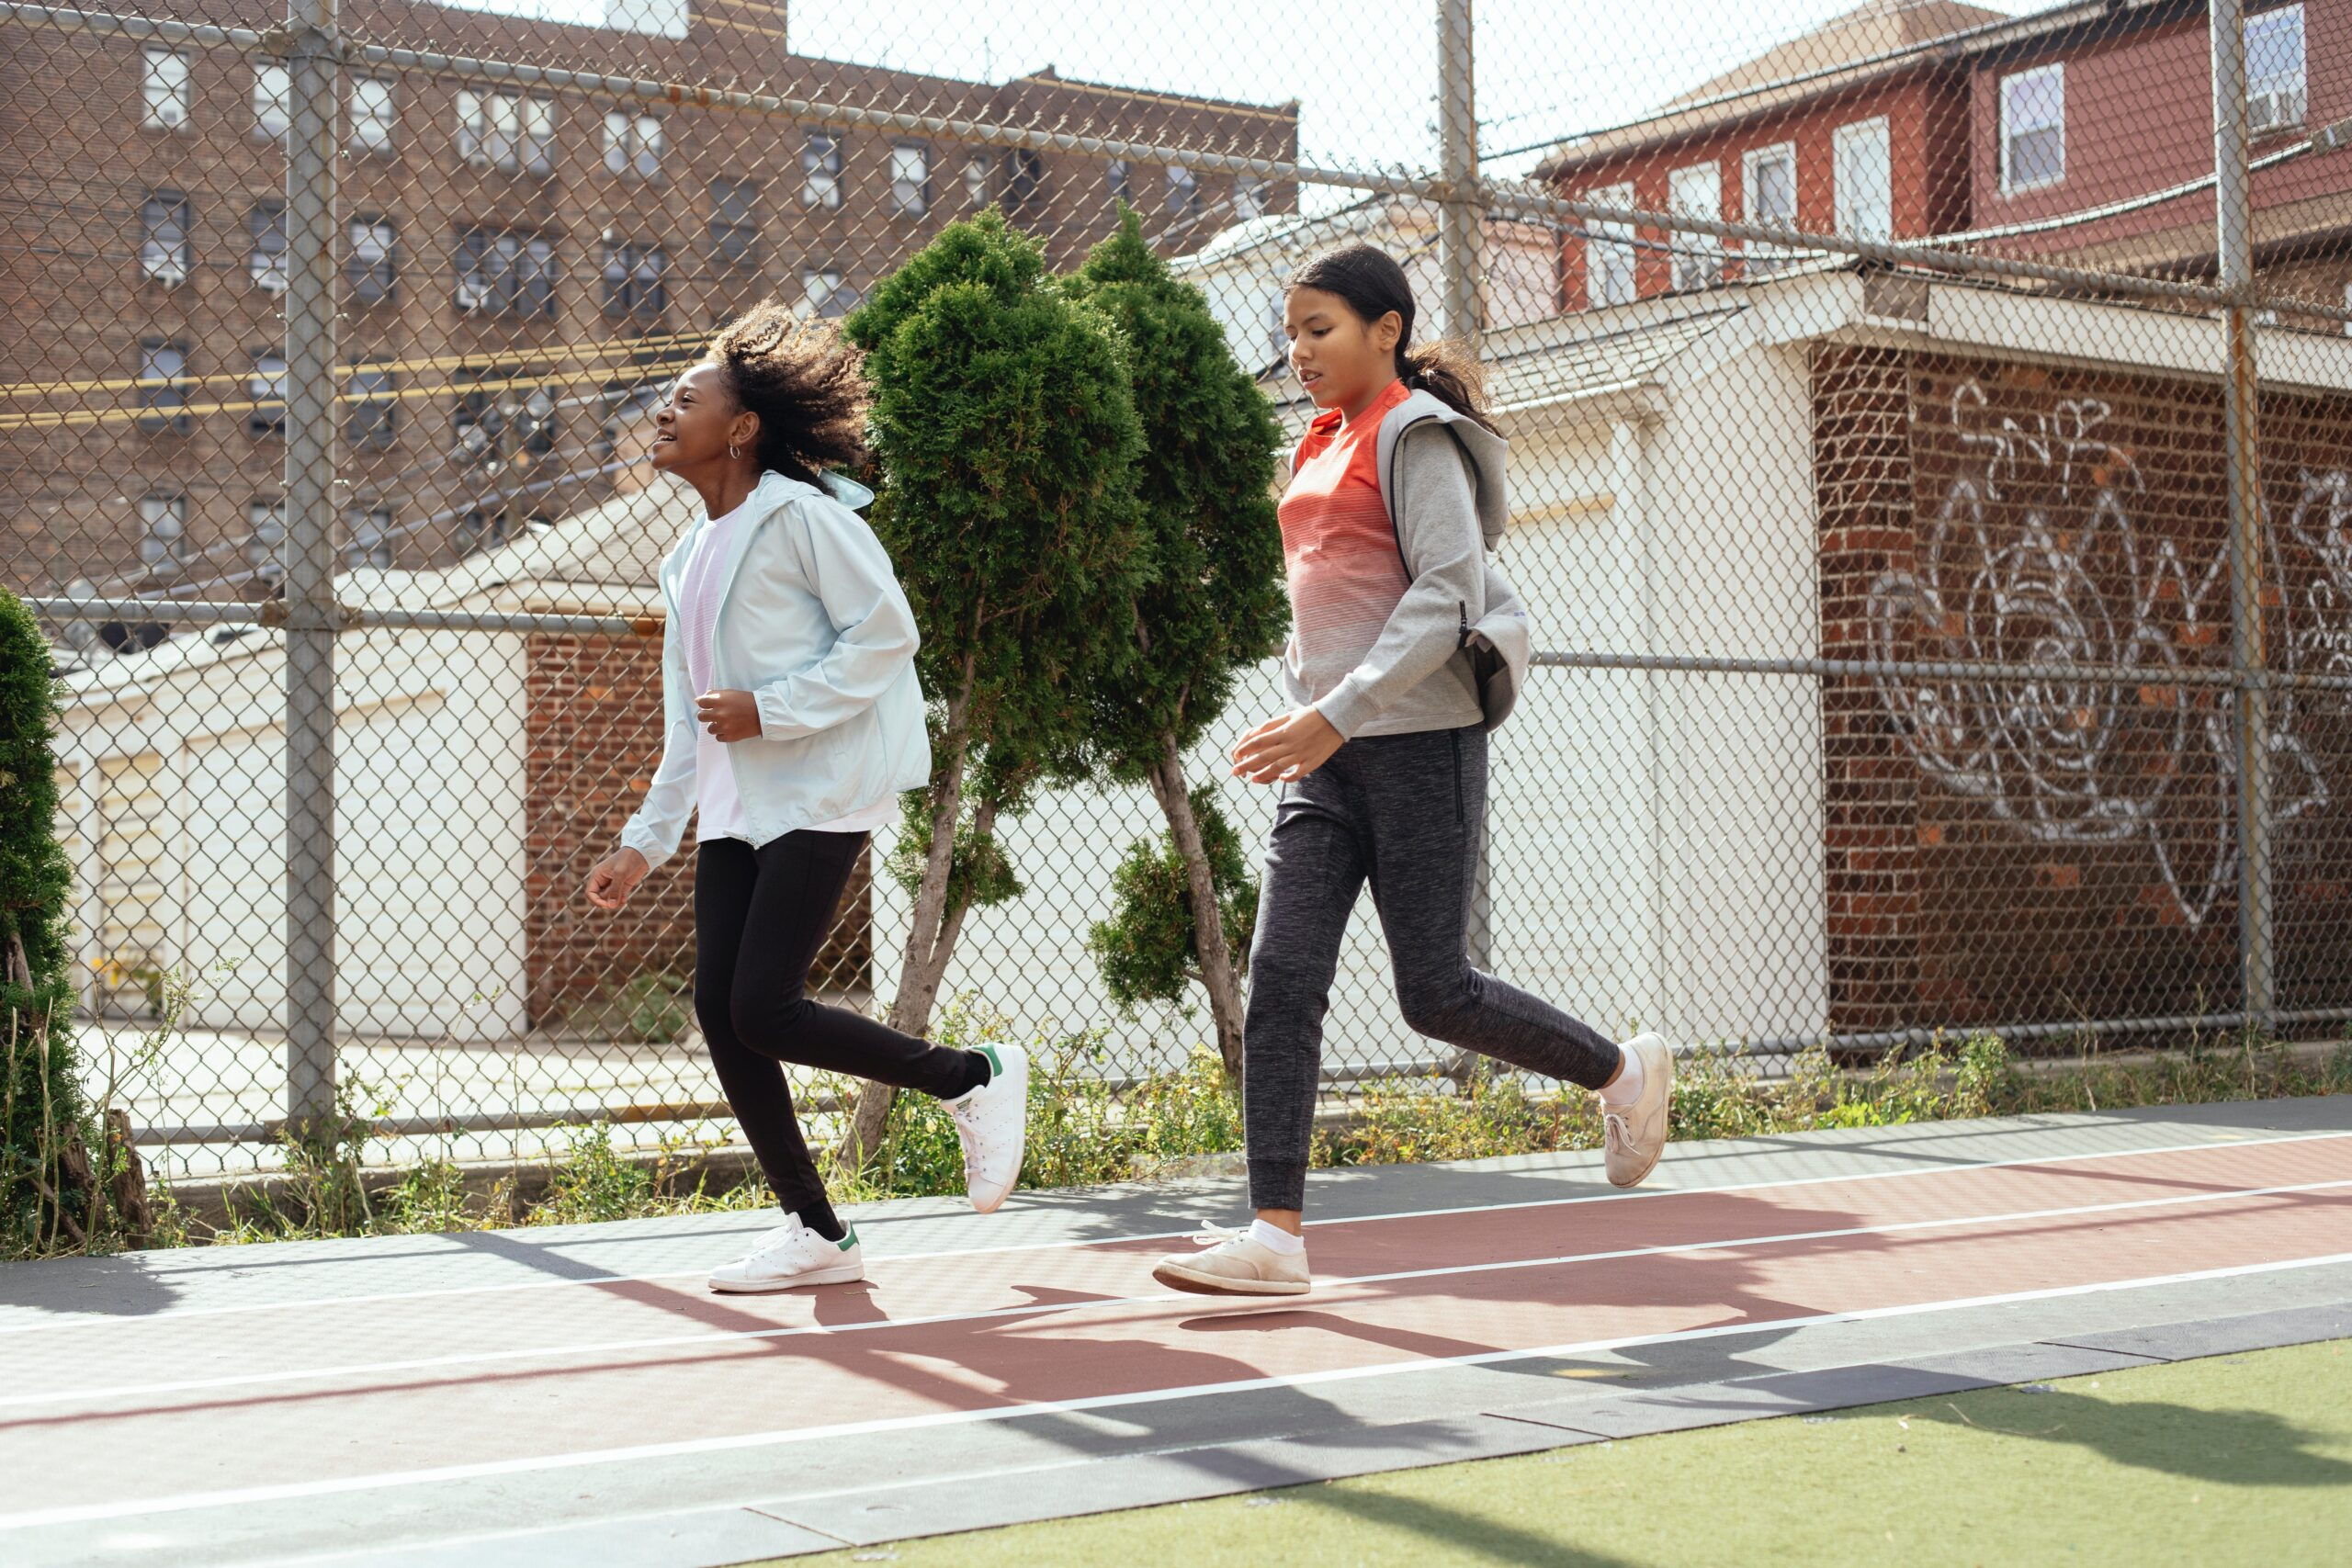 Being physically active helps you learn better